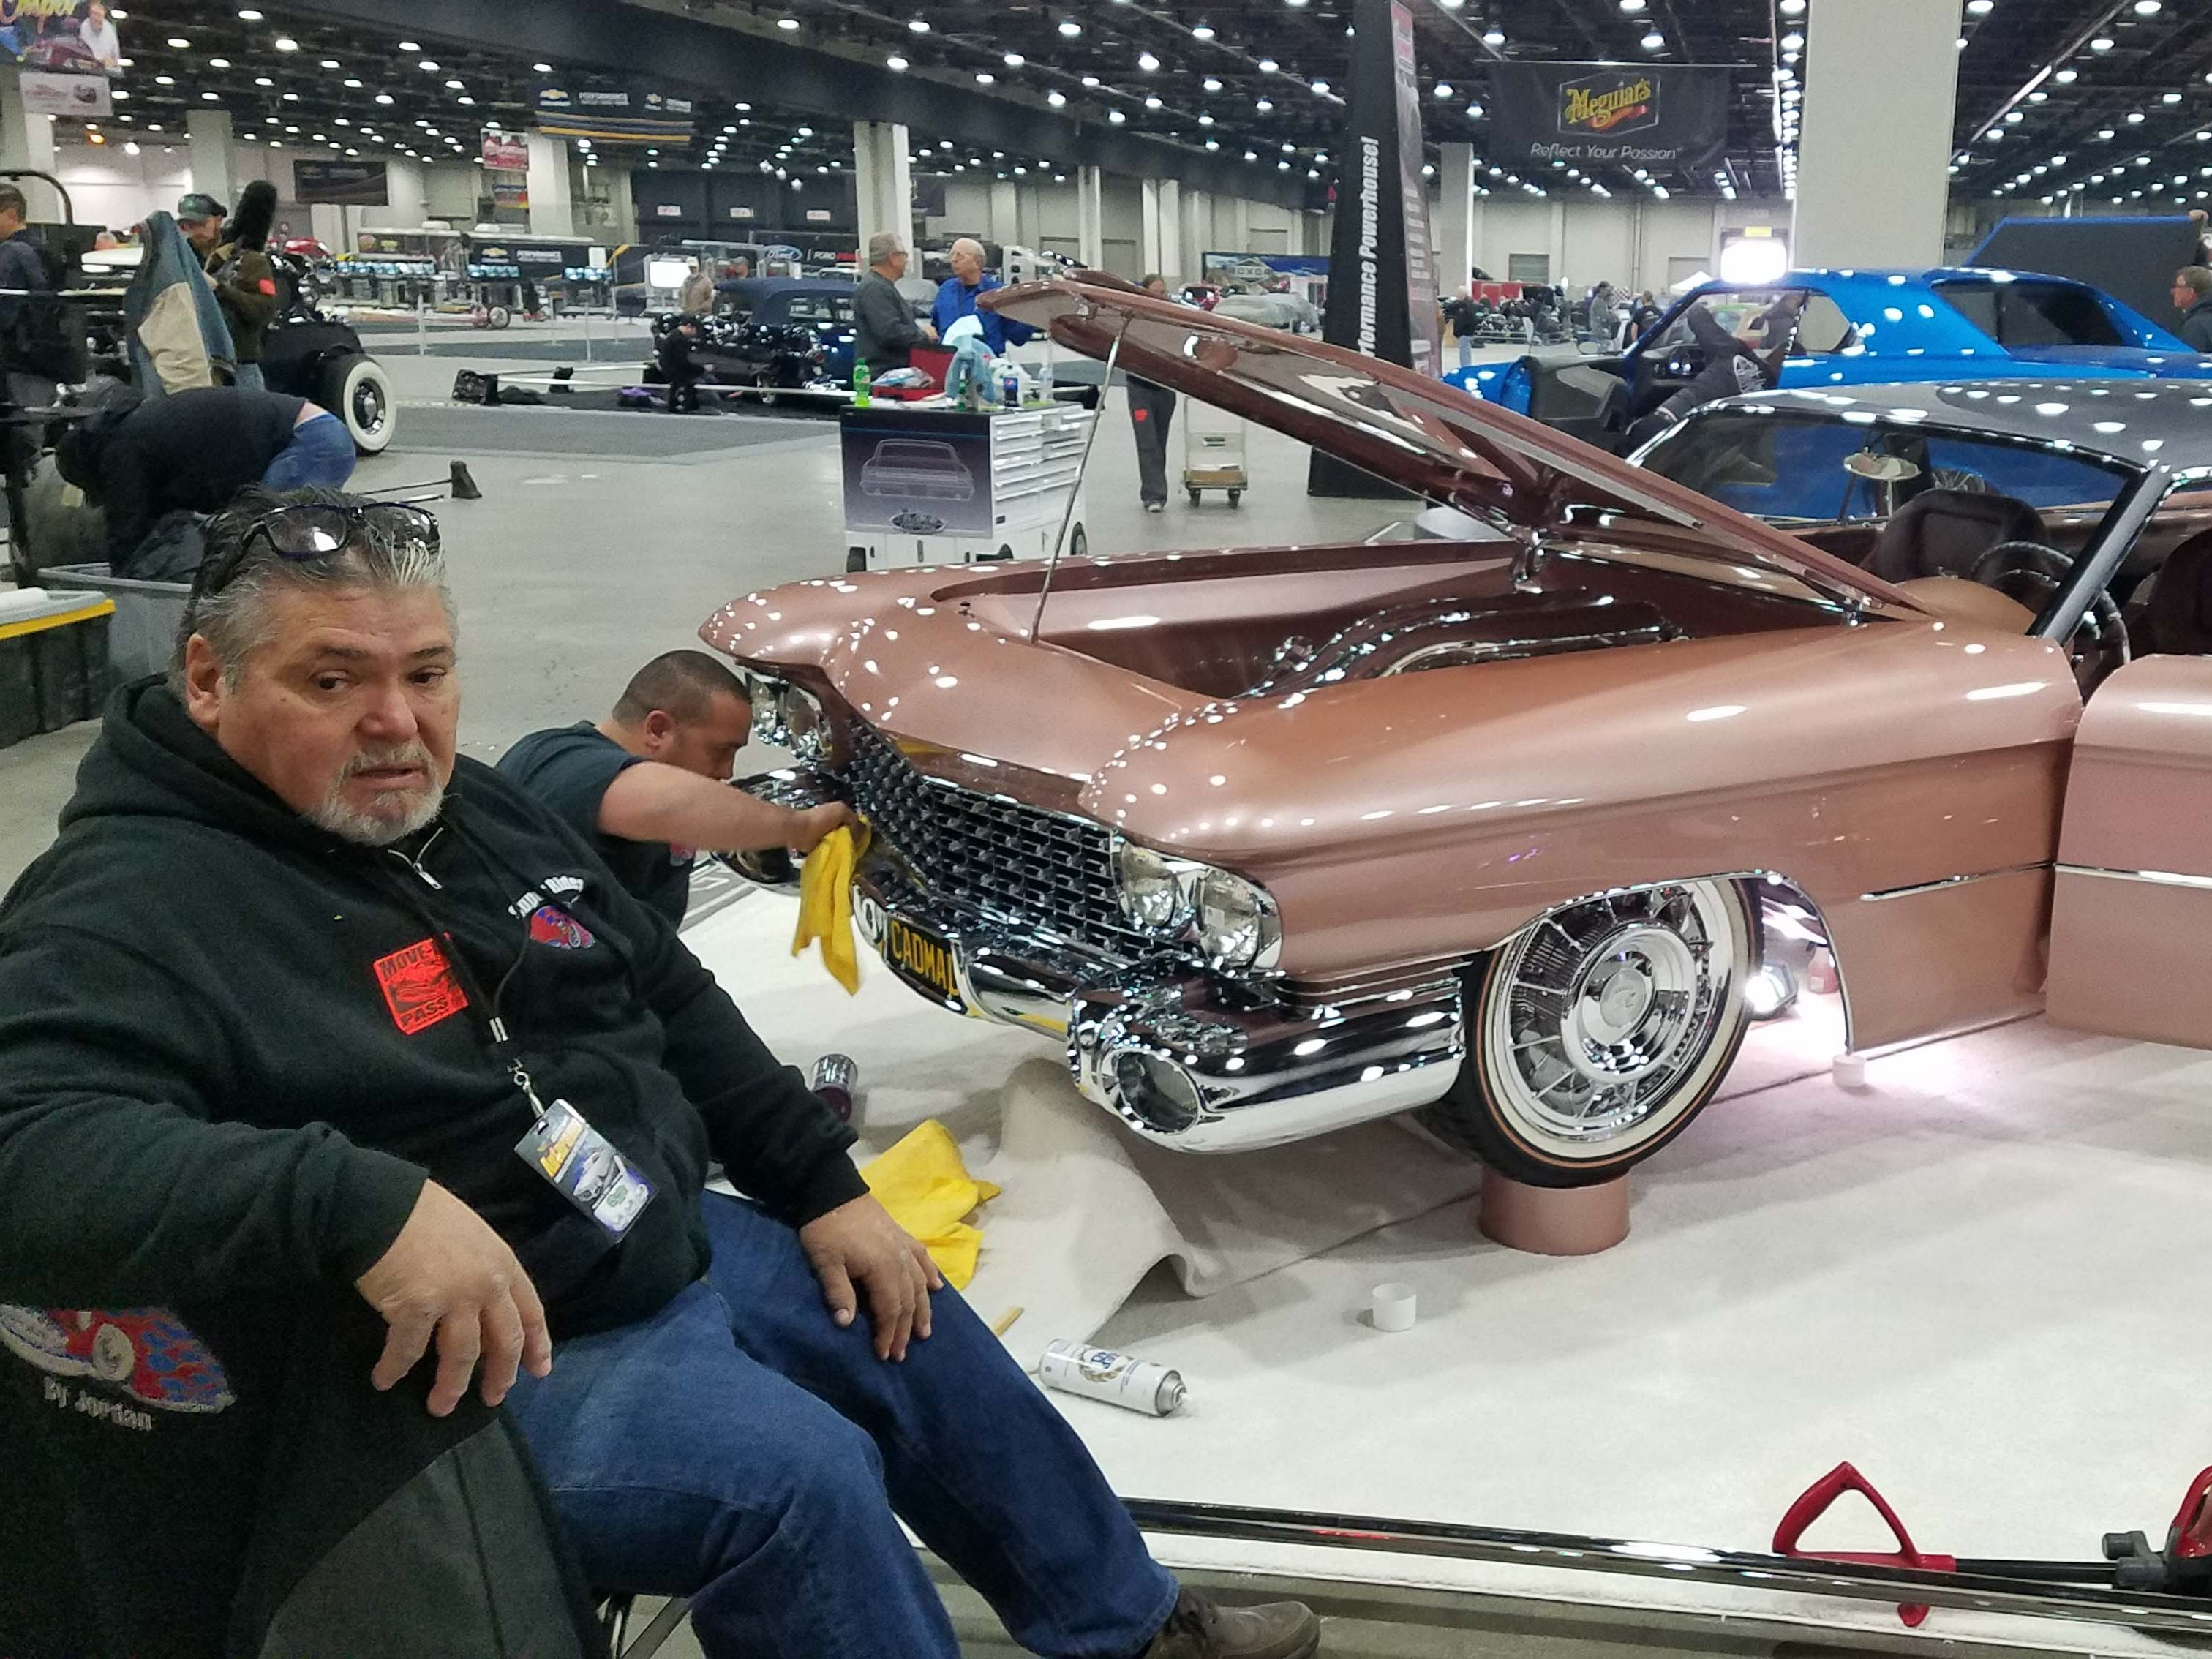 Builder Jordan Quintal (foreground) and his son custom modified this '59 Cadillac El Dorado Brougham for Autorama. It's up for a Ridler Award.